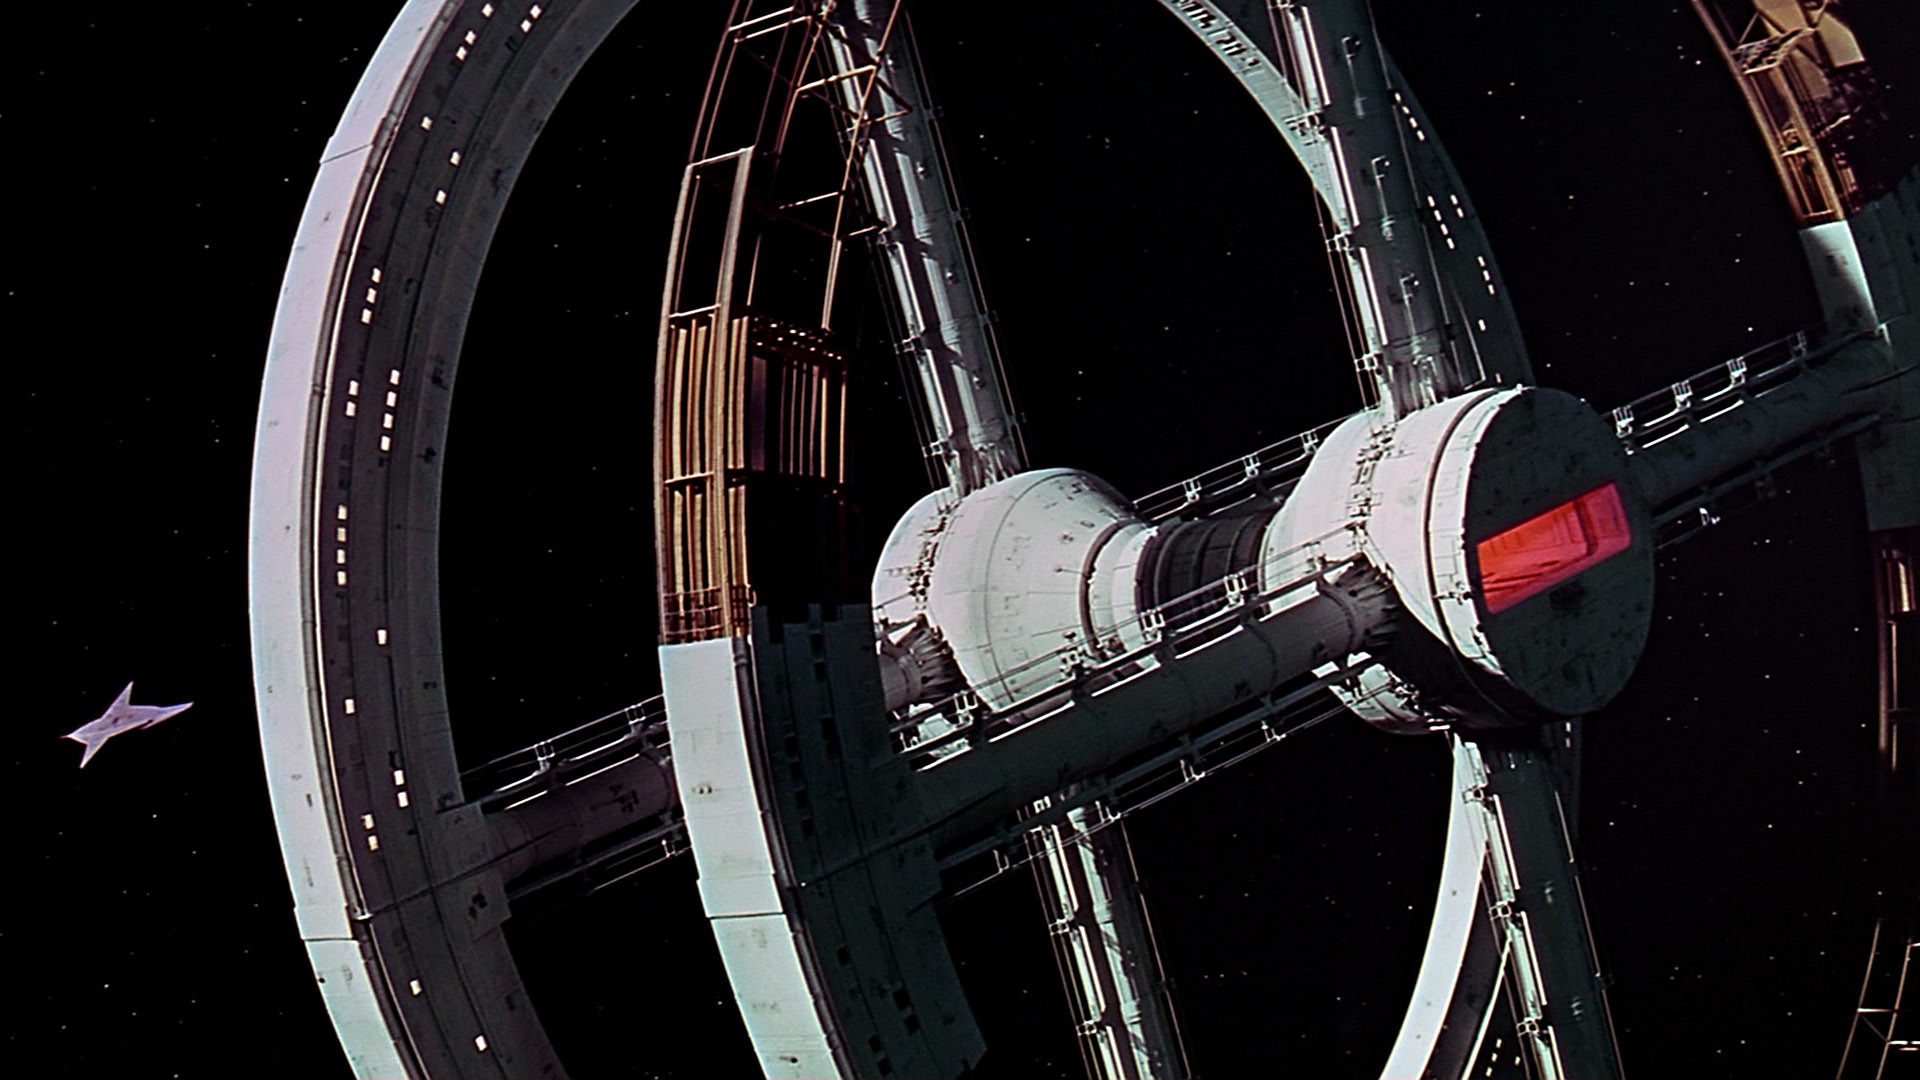 2001 a space odyssey movie essay The two classic sci-fi films reflected the spirit of their times: 2001 full of hope for  an evolving humanity, and  from 2001: a space odyssey.